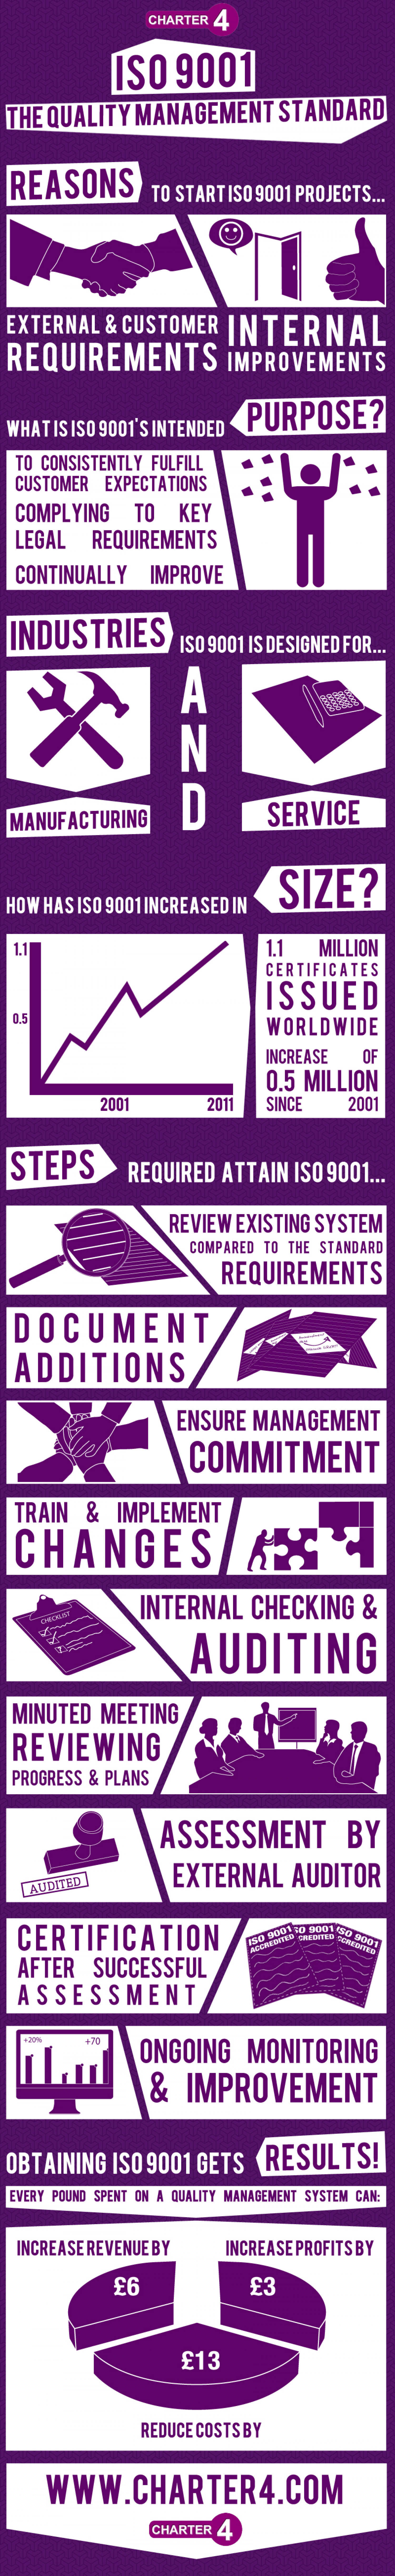 ISO 9001: The Quality Management Standard  Infographic